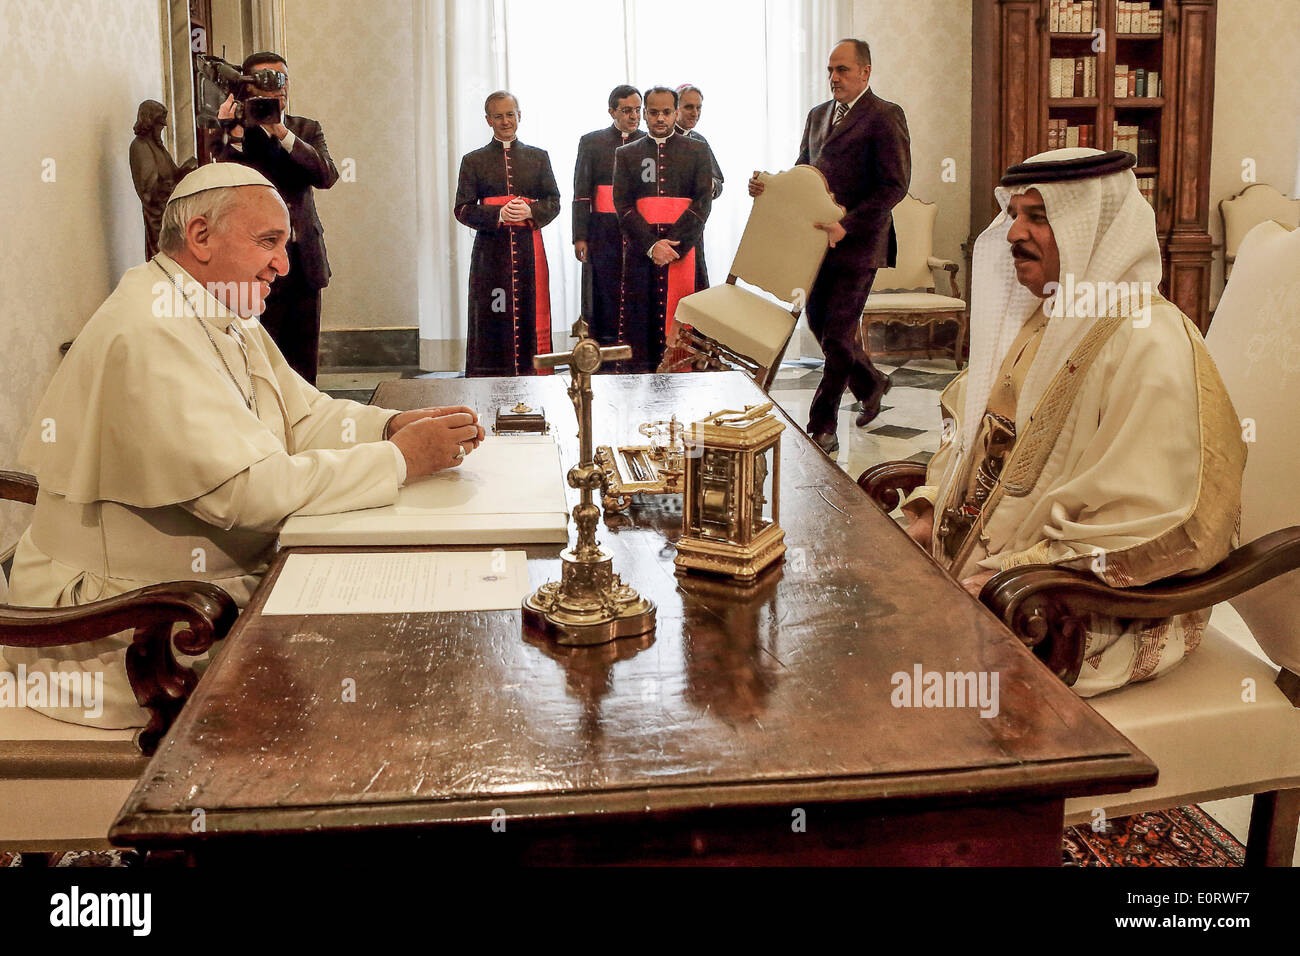 Vatican City. 19th May, 2014. Pope Francis meets with the King of Bahrain, Isa S.M AL KHALIFA. Credit:  Realy Easy Star/Alamy Live News - Stock Image